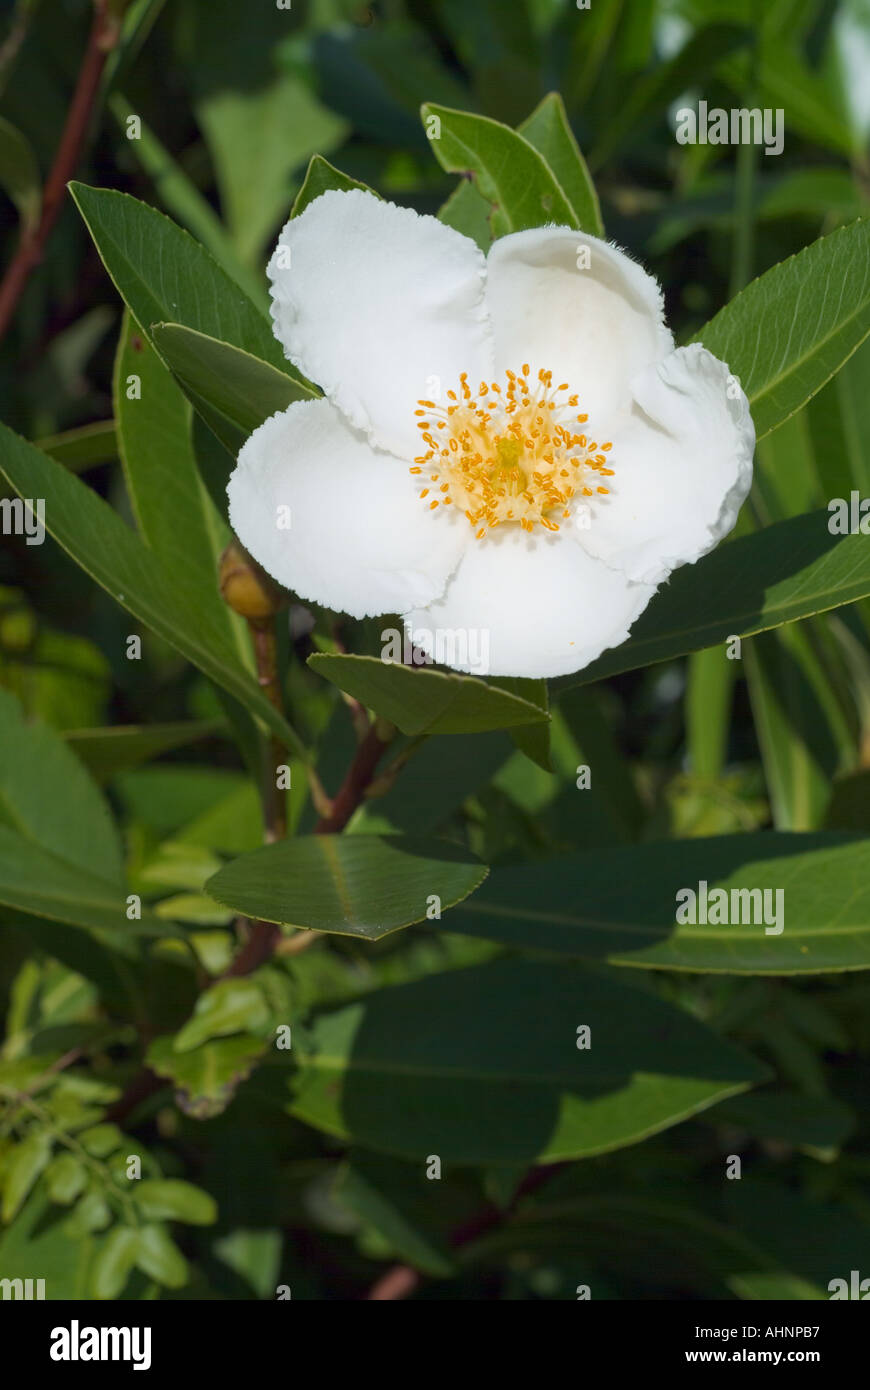 Loblolly bay gordonia lasianthus flower and leaves leaf tree tea loblolly bay gordonia lasianthus flower and leaves leaf tree tea family white flowerring florida swamp plant mightylinksfo